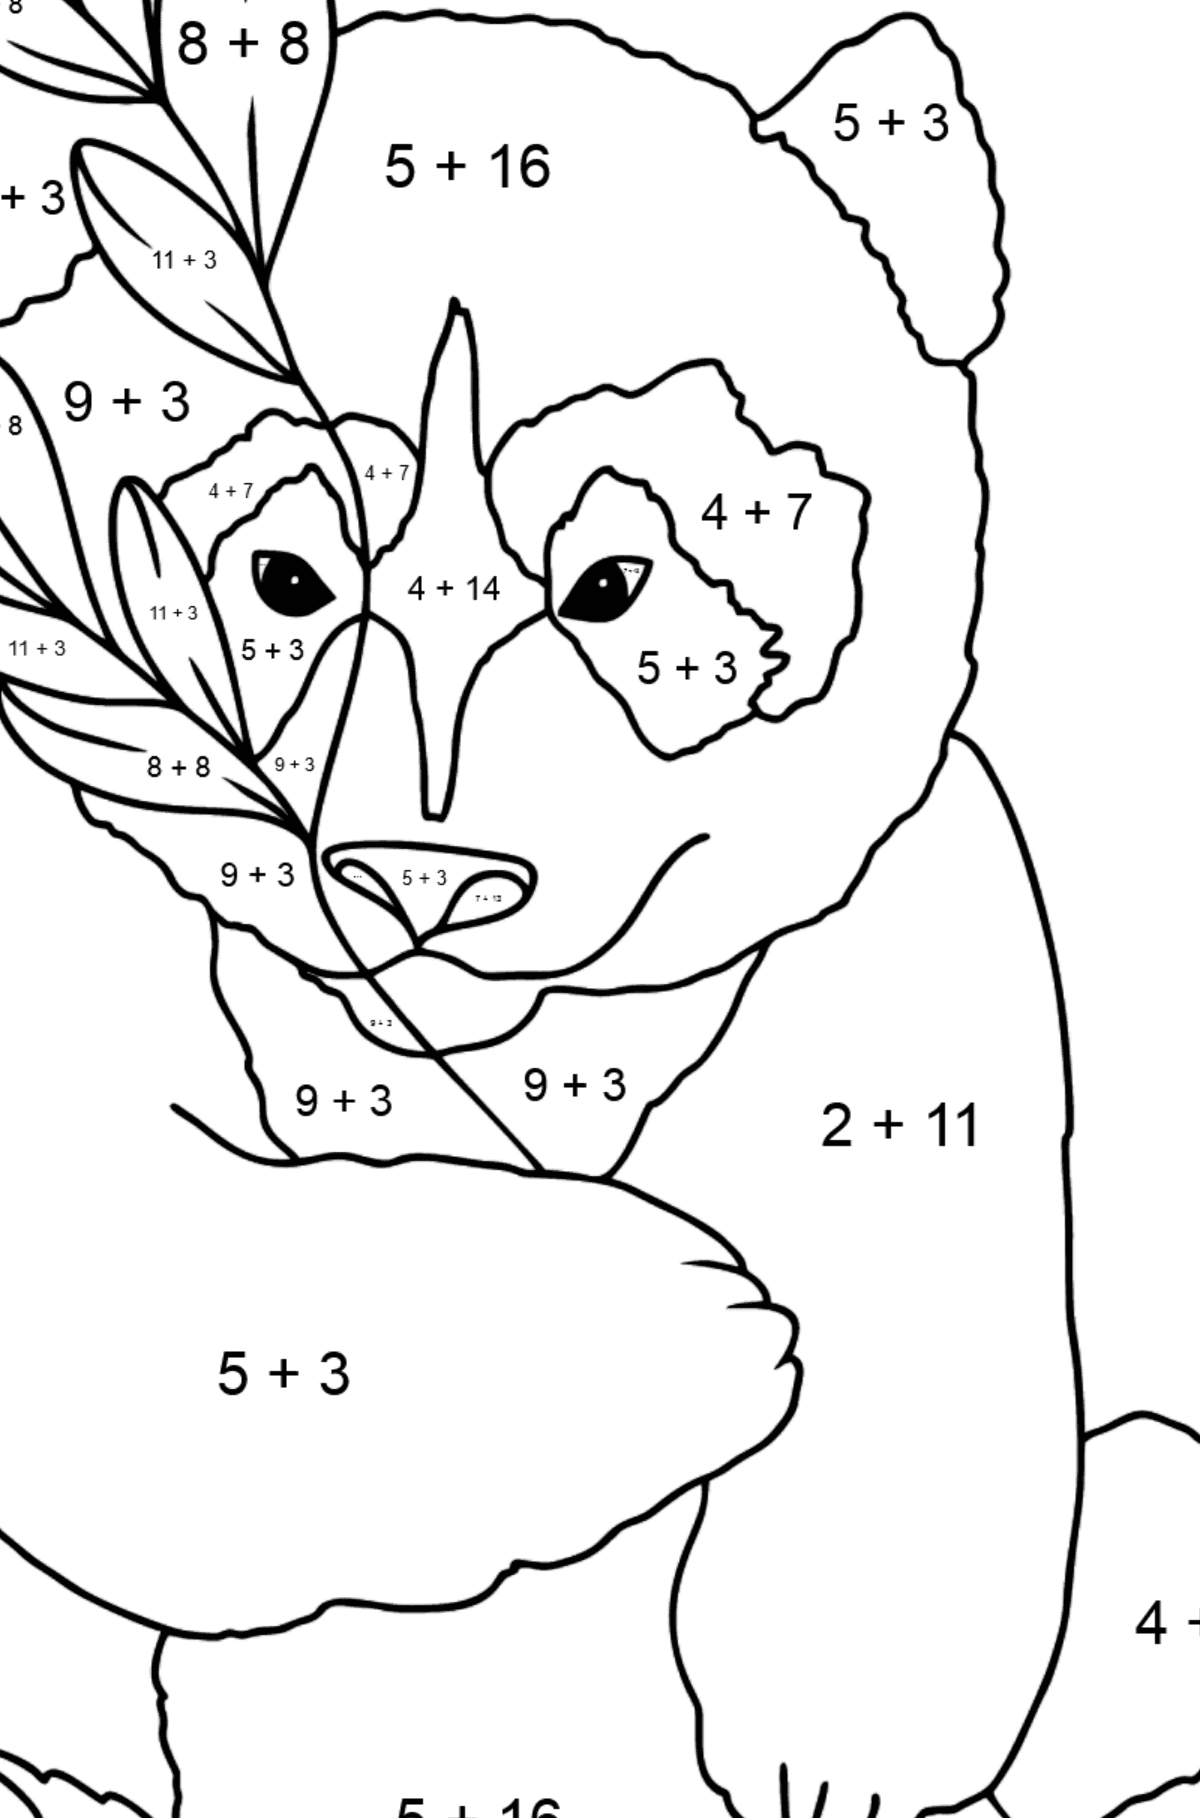 Coloring Page - A Panda is Having a Rest - Math Coloring - Addition for Kids